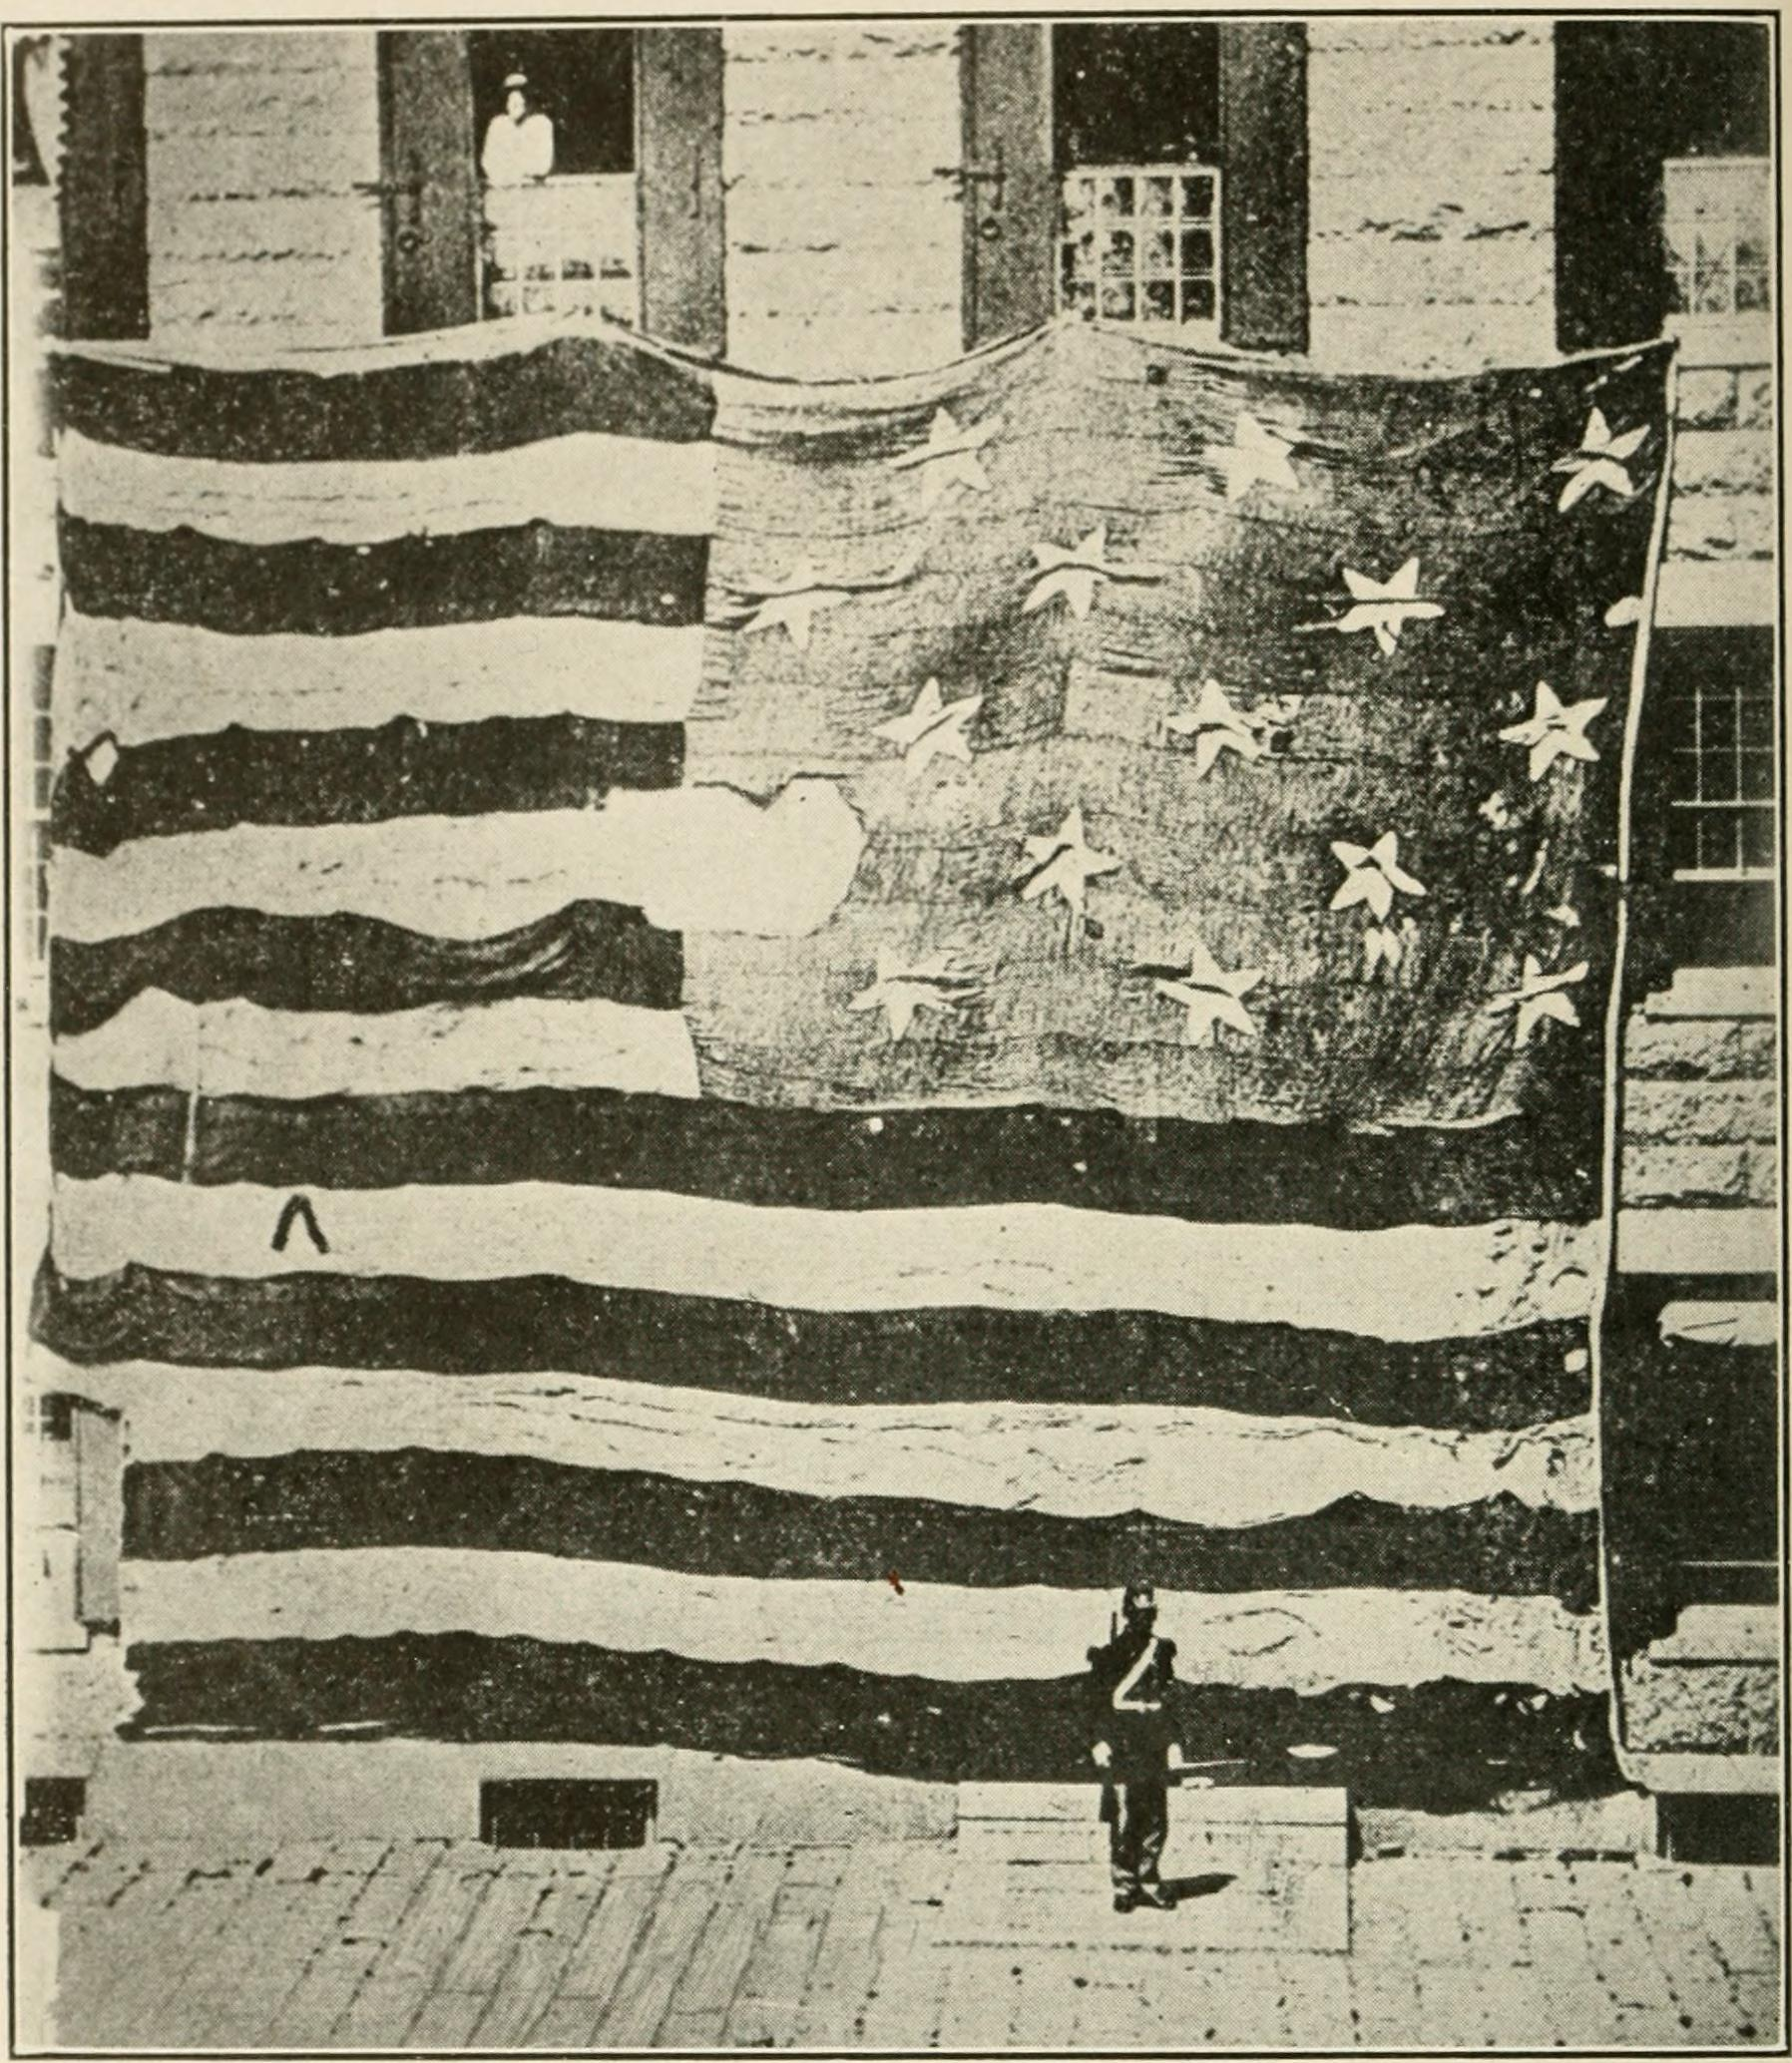 The remnants of the Ft. McHenry flag